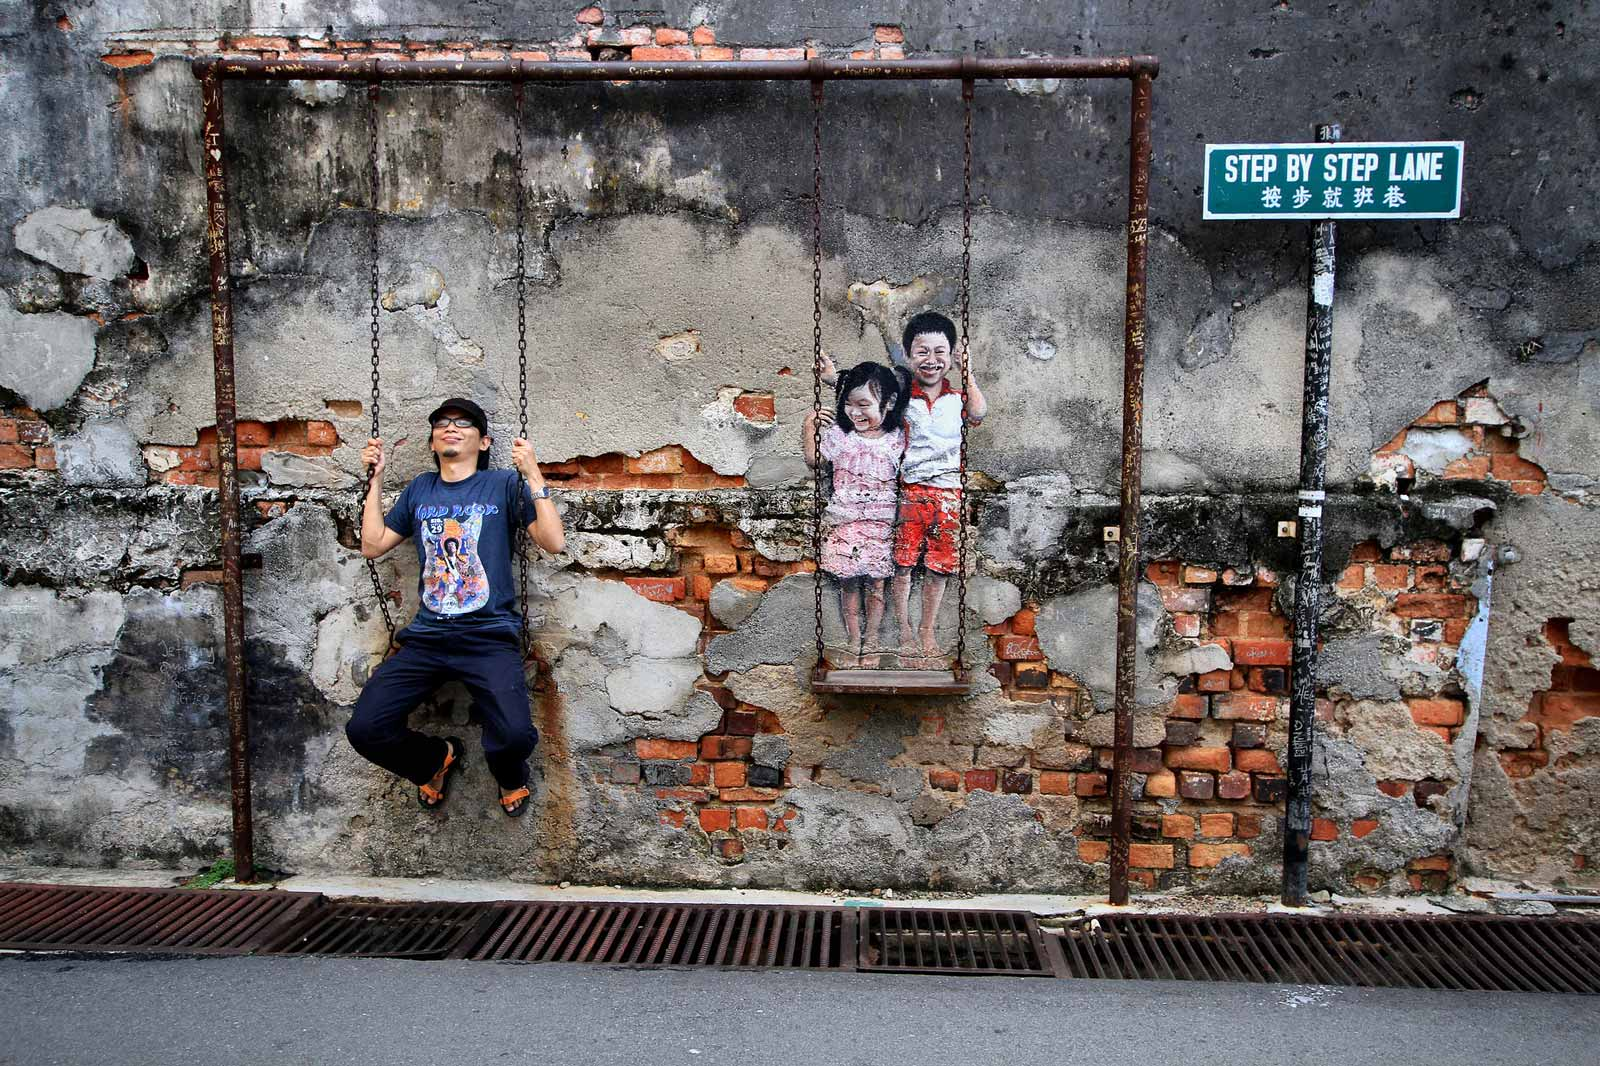 Children On A Swing, another famous piece of George Town street art. Photo: Mohd Fazlin / Flickr creative commons